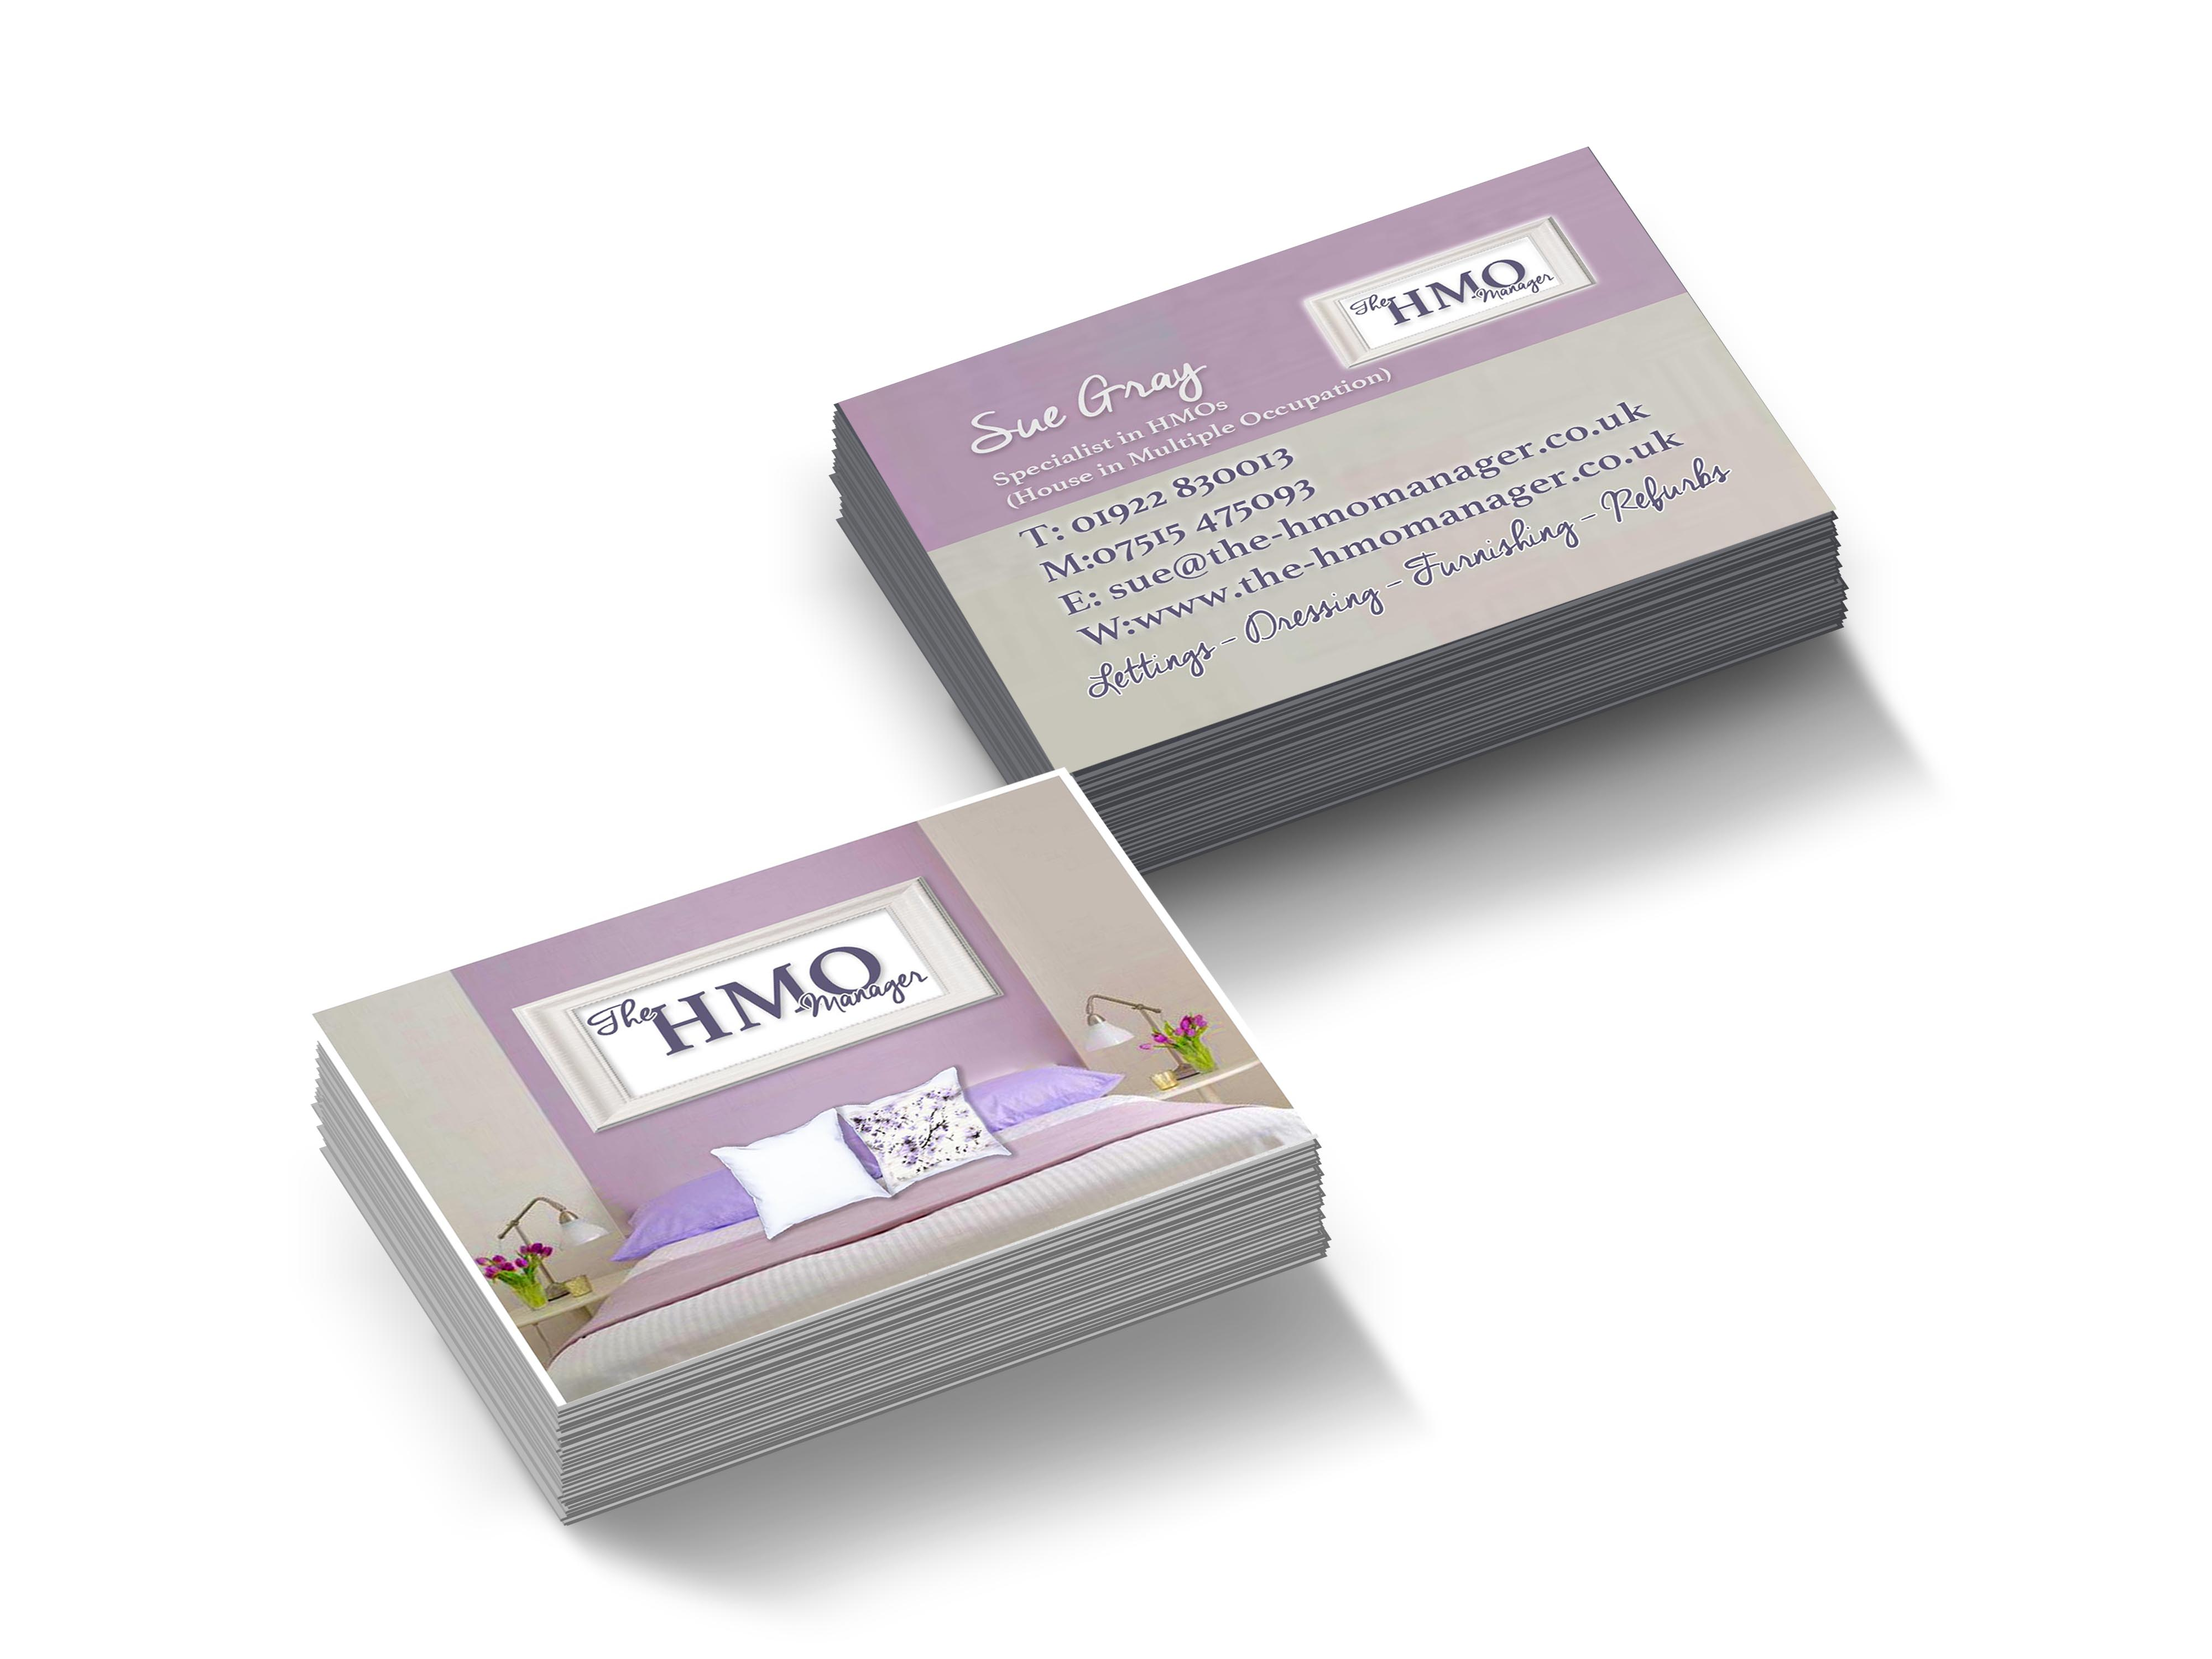 The HMO Manager Business Cards